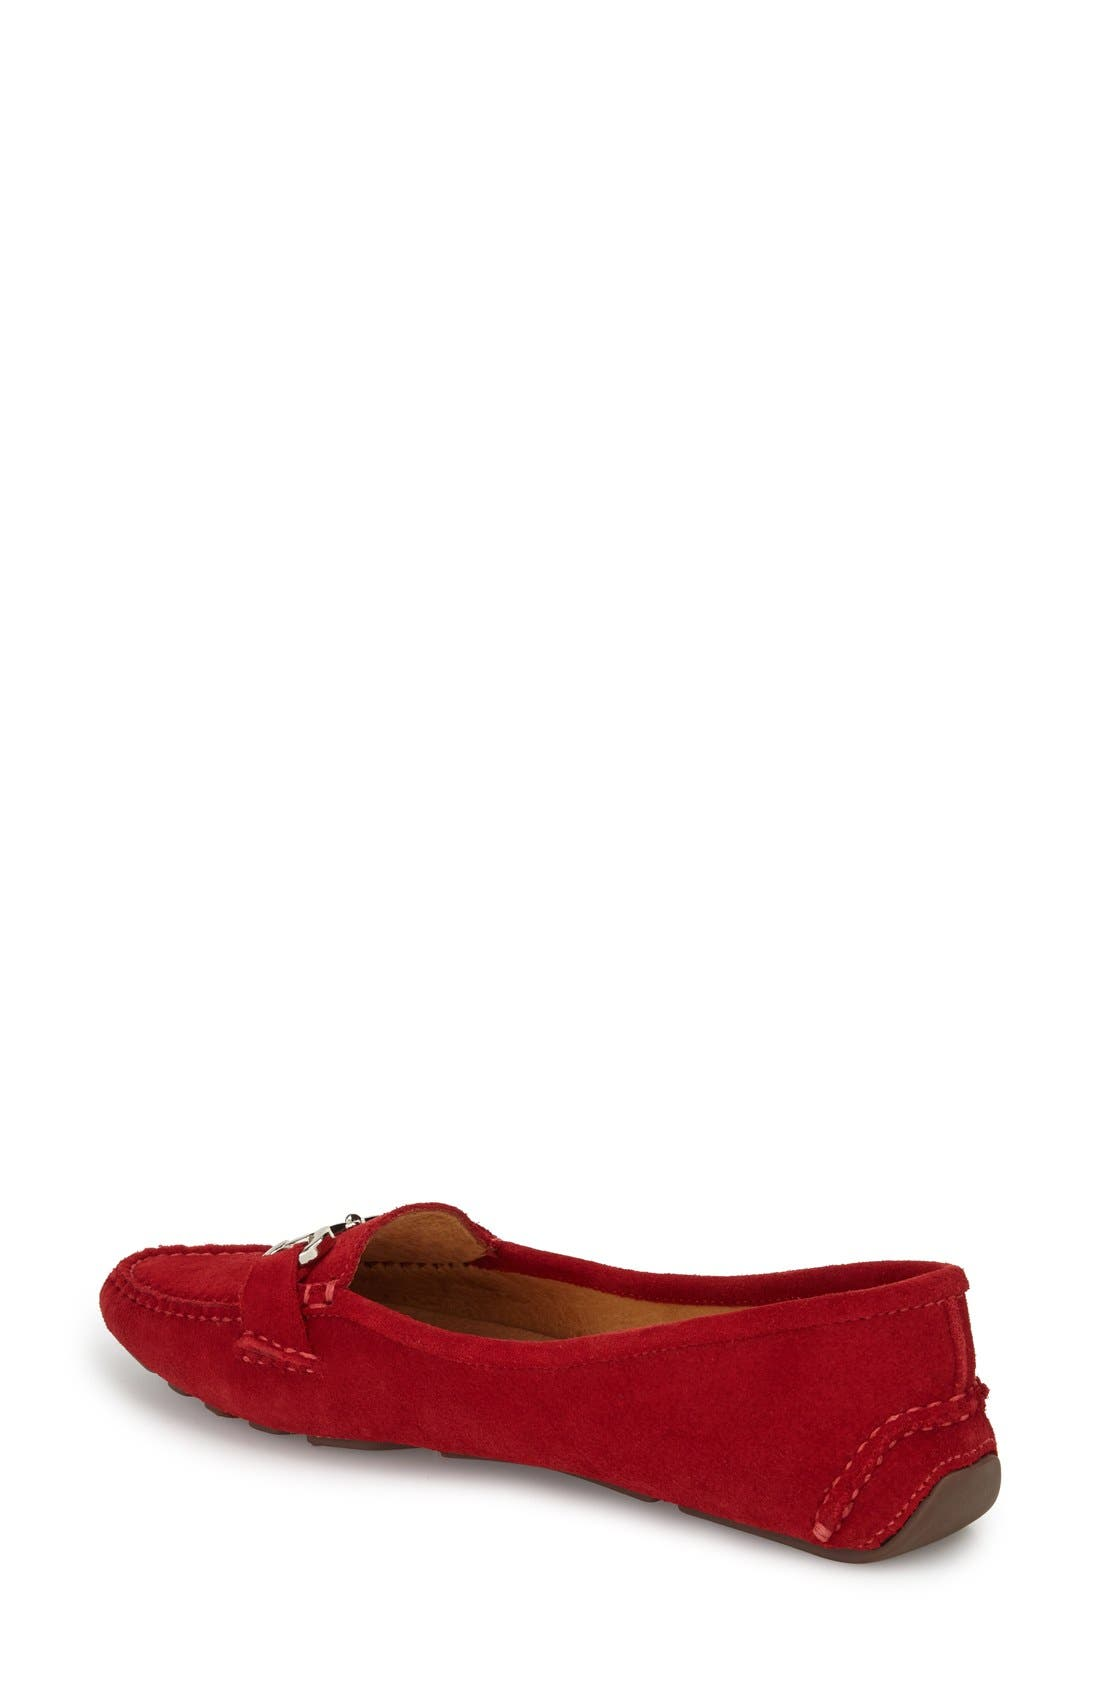 Alternate Image 2  - patricia green 'Carrie' Loafer (Women)